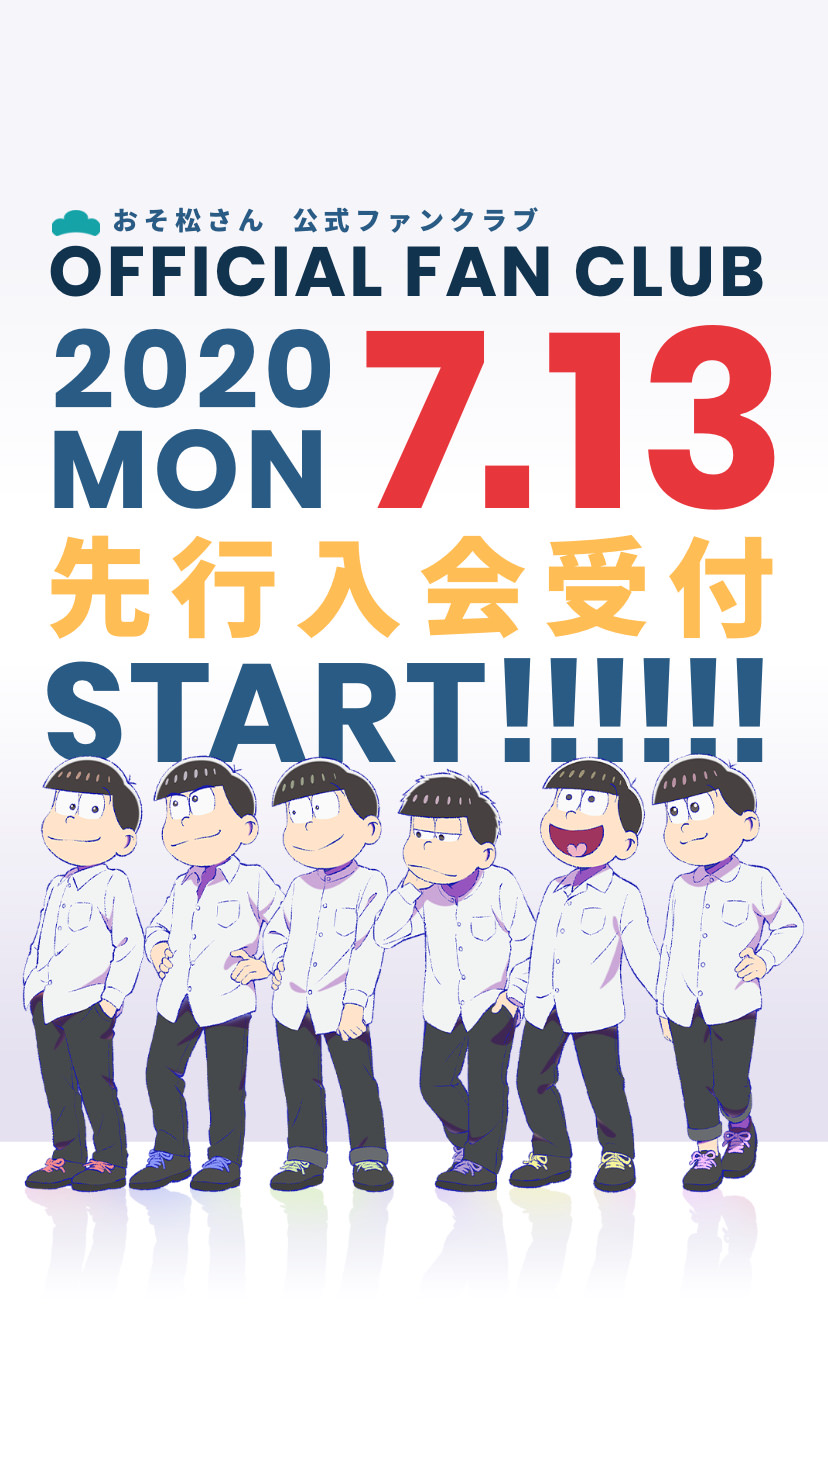 OFFICIAL FAN CLUB 2020 MON 7.13 先行入会受付START!!!!!!